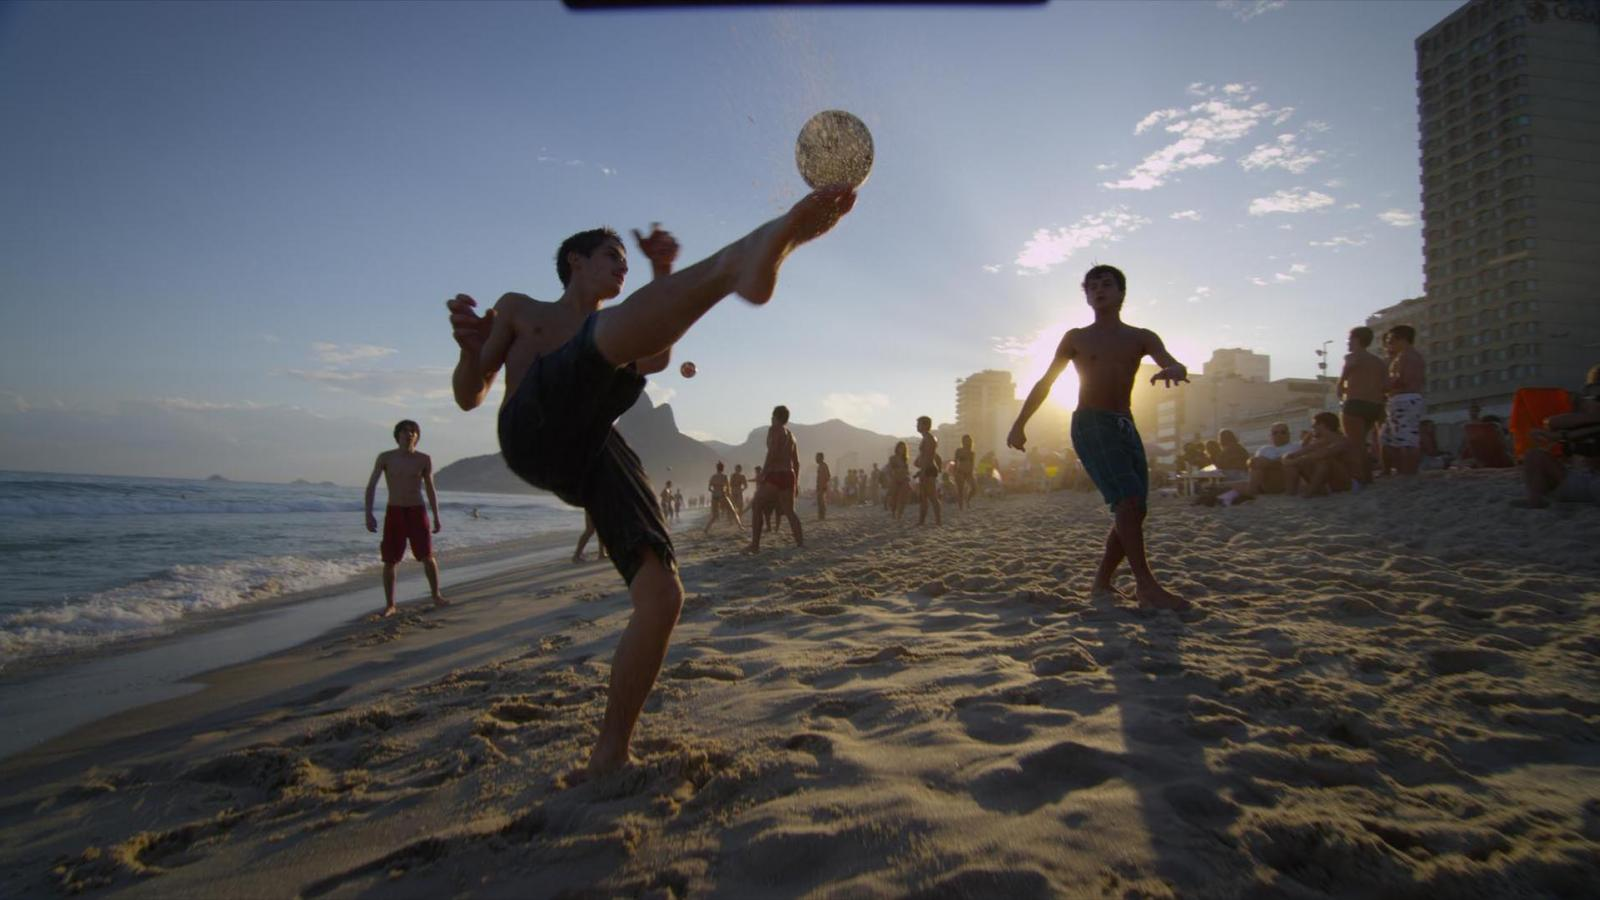 BOUNCE: HOW THE BALL TAUGHT THE WORLD TO PLAY, Documentary Exploring Origins of Sport, to NY Premiere at DOC NYC | TRAILER